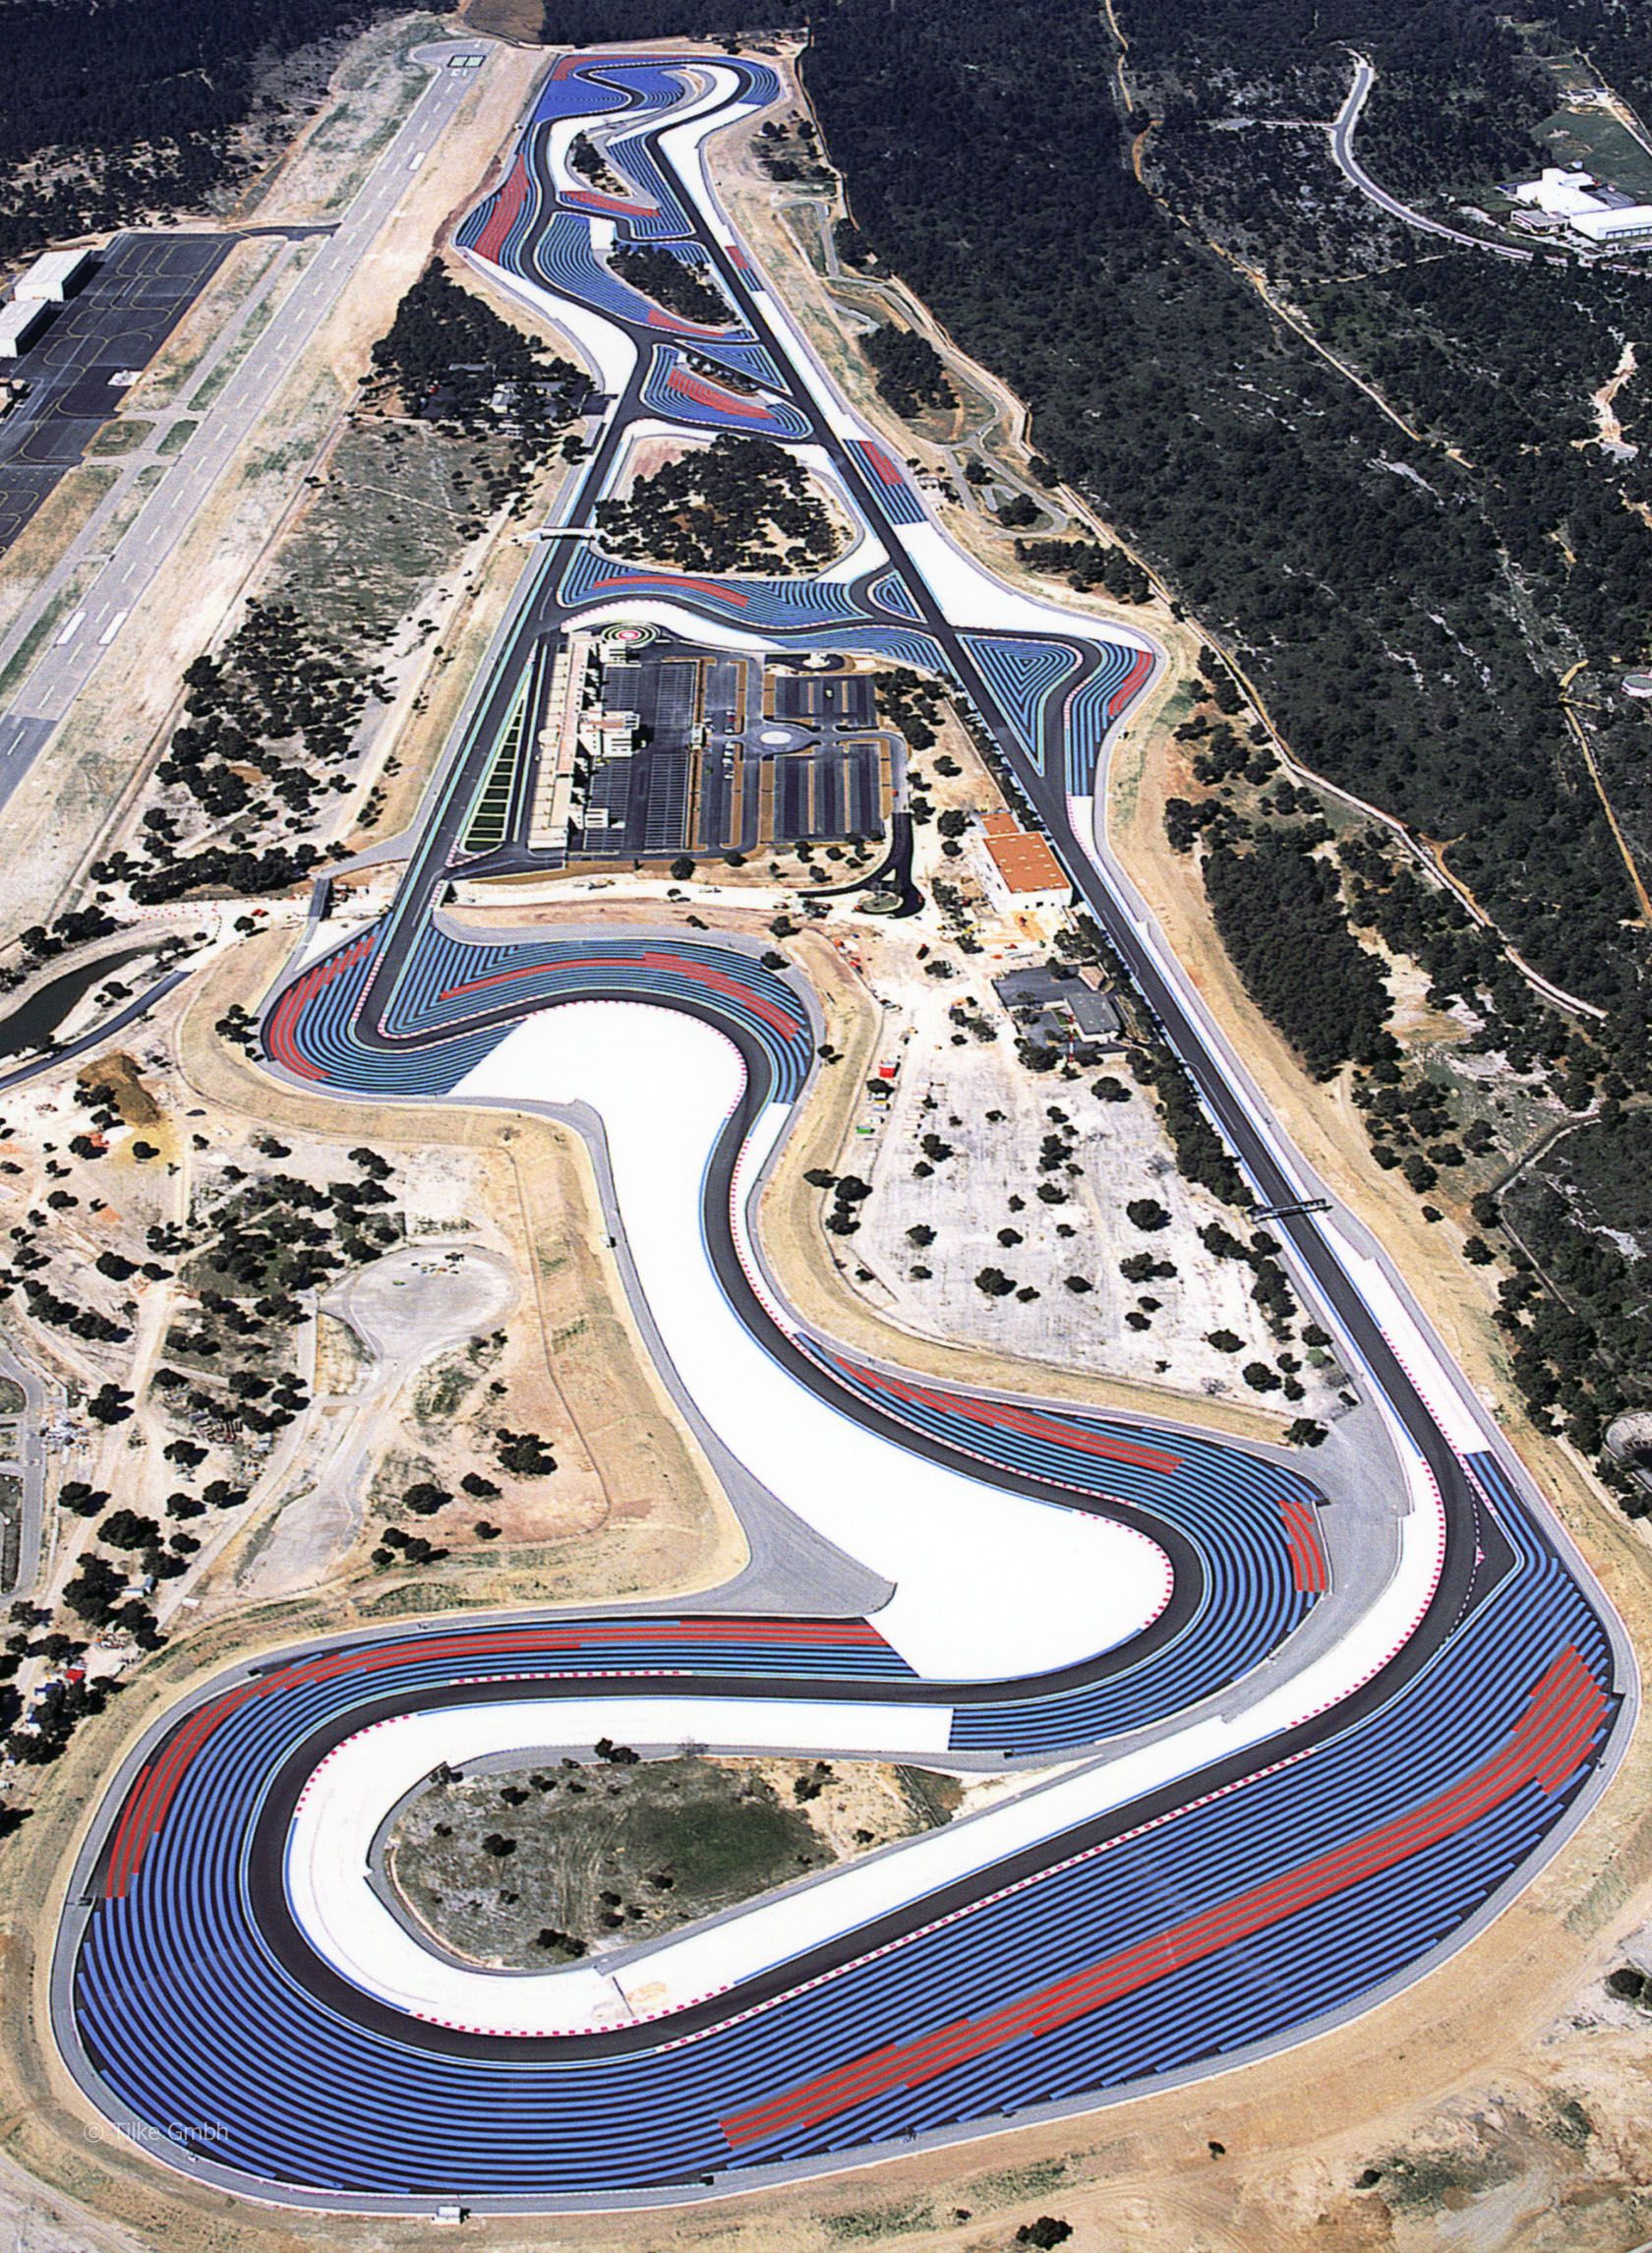 Paul Ricard has 167 track configurations. Which one would